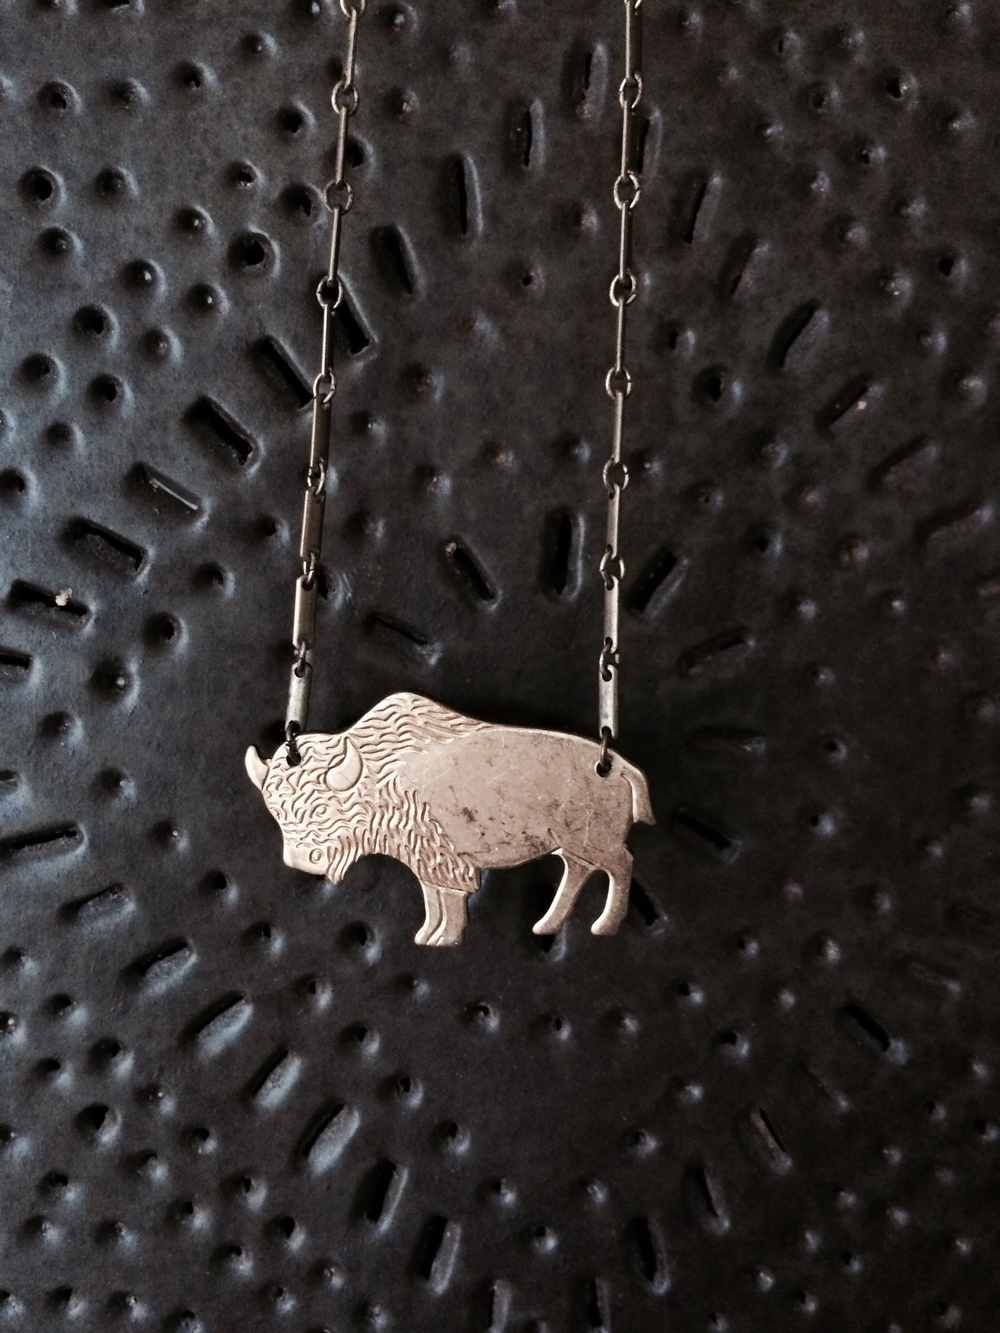 Handmade Bison necklace, from GLEAN